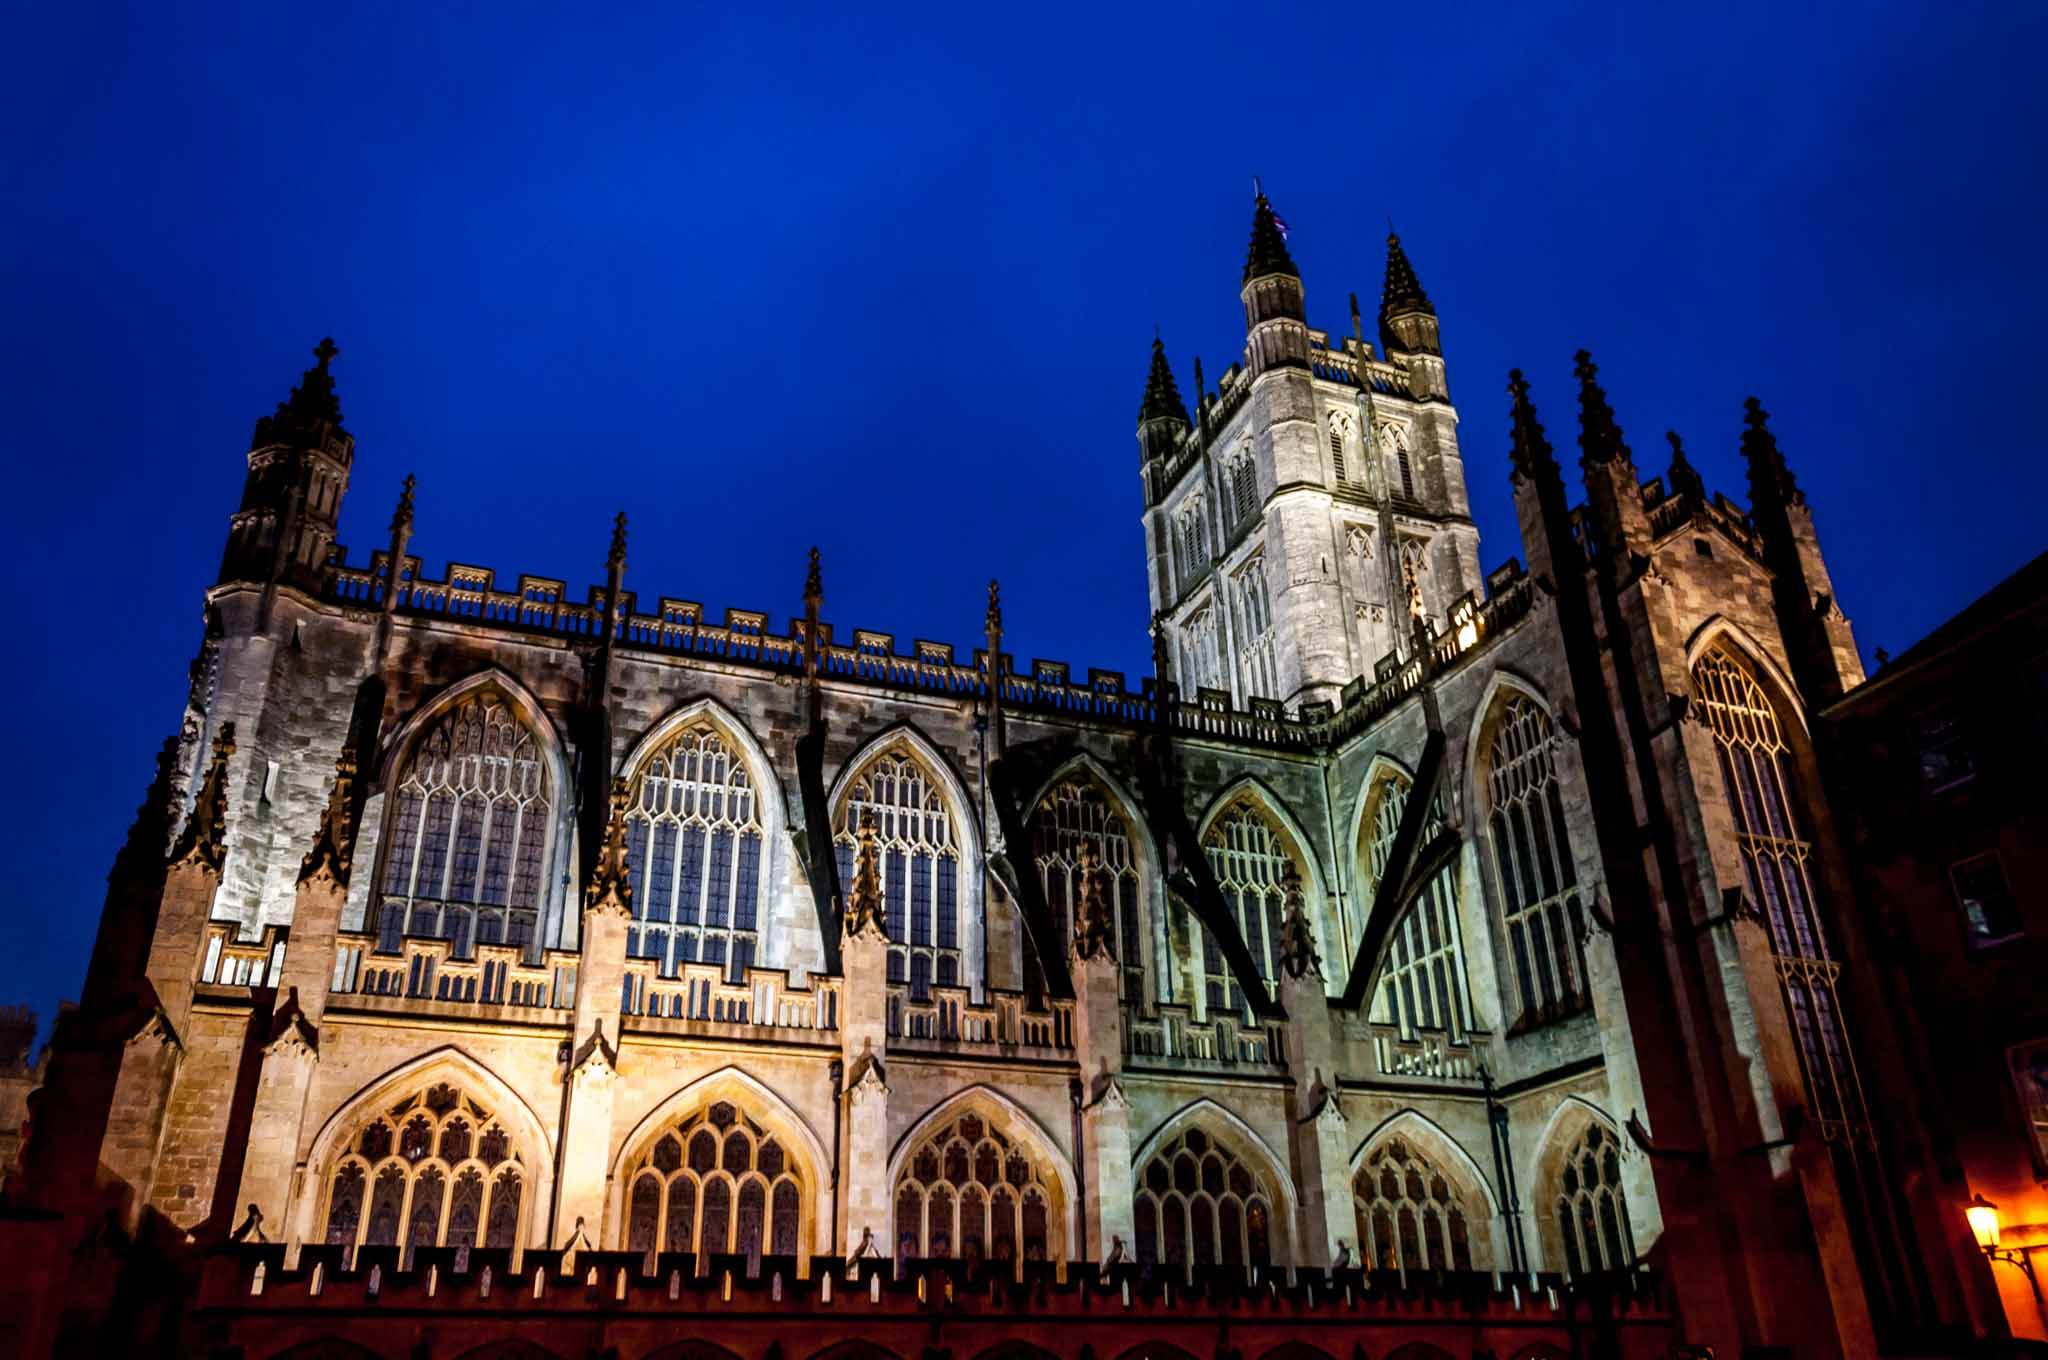 Gothic cathedral lit in colorful lights at night, the Bath Abbey